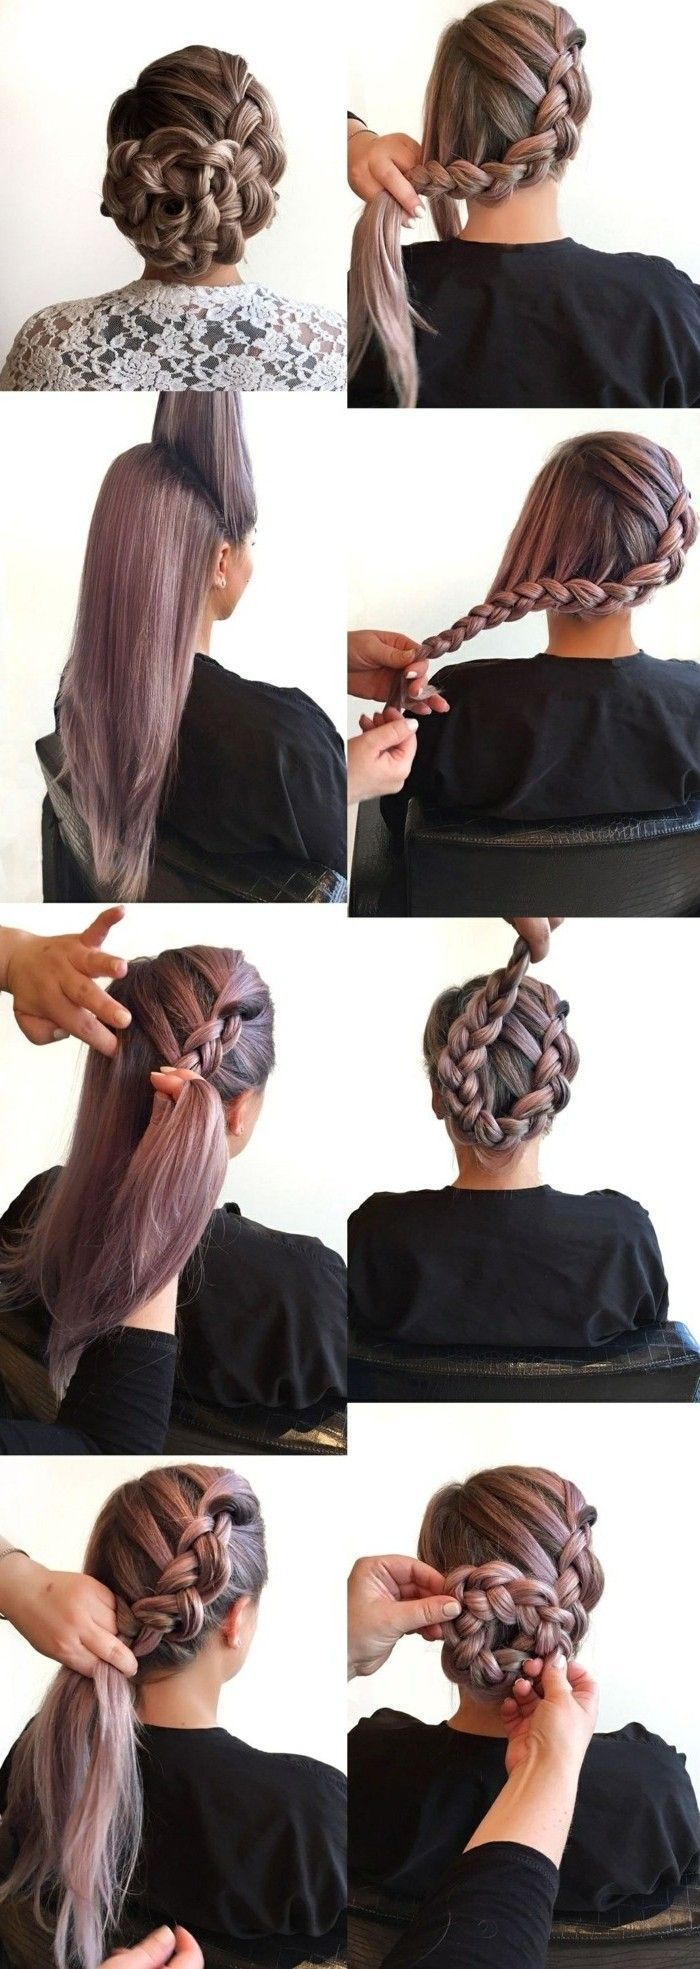 ▷ 1001 + ideas for beautiful hairstyles plus instructions